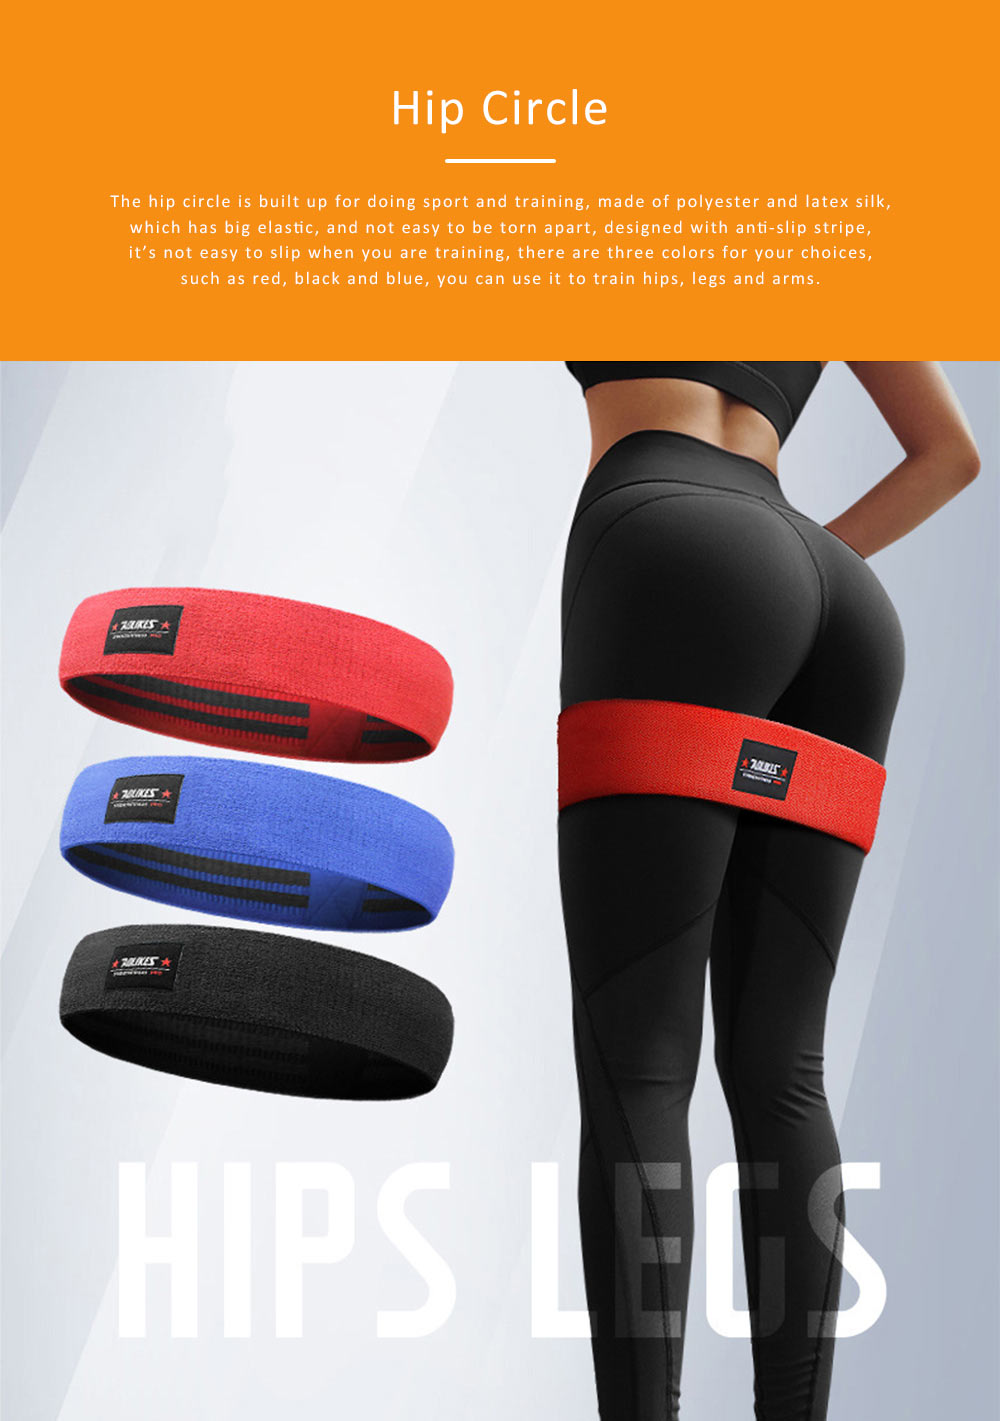 Yoga Band Polyester Latex Material for Training Elastic Resistance Ring Hip Circle 0